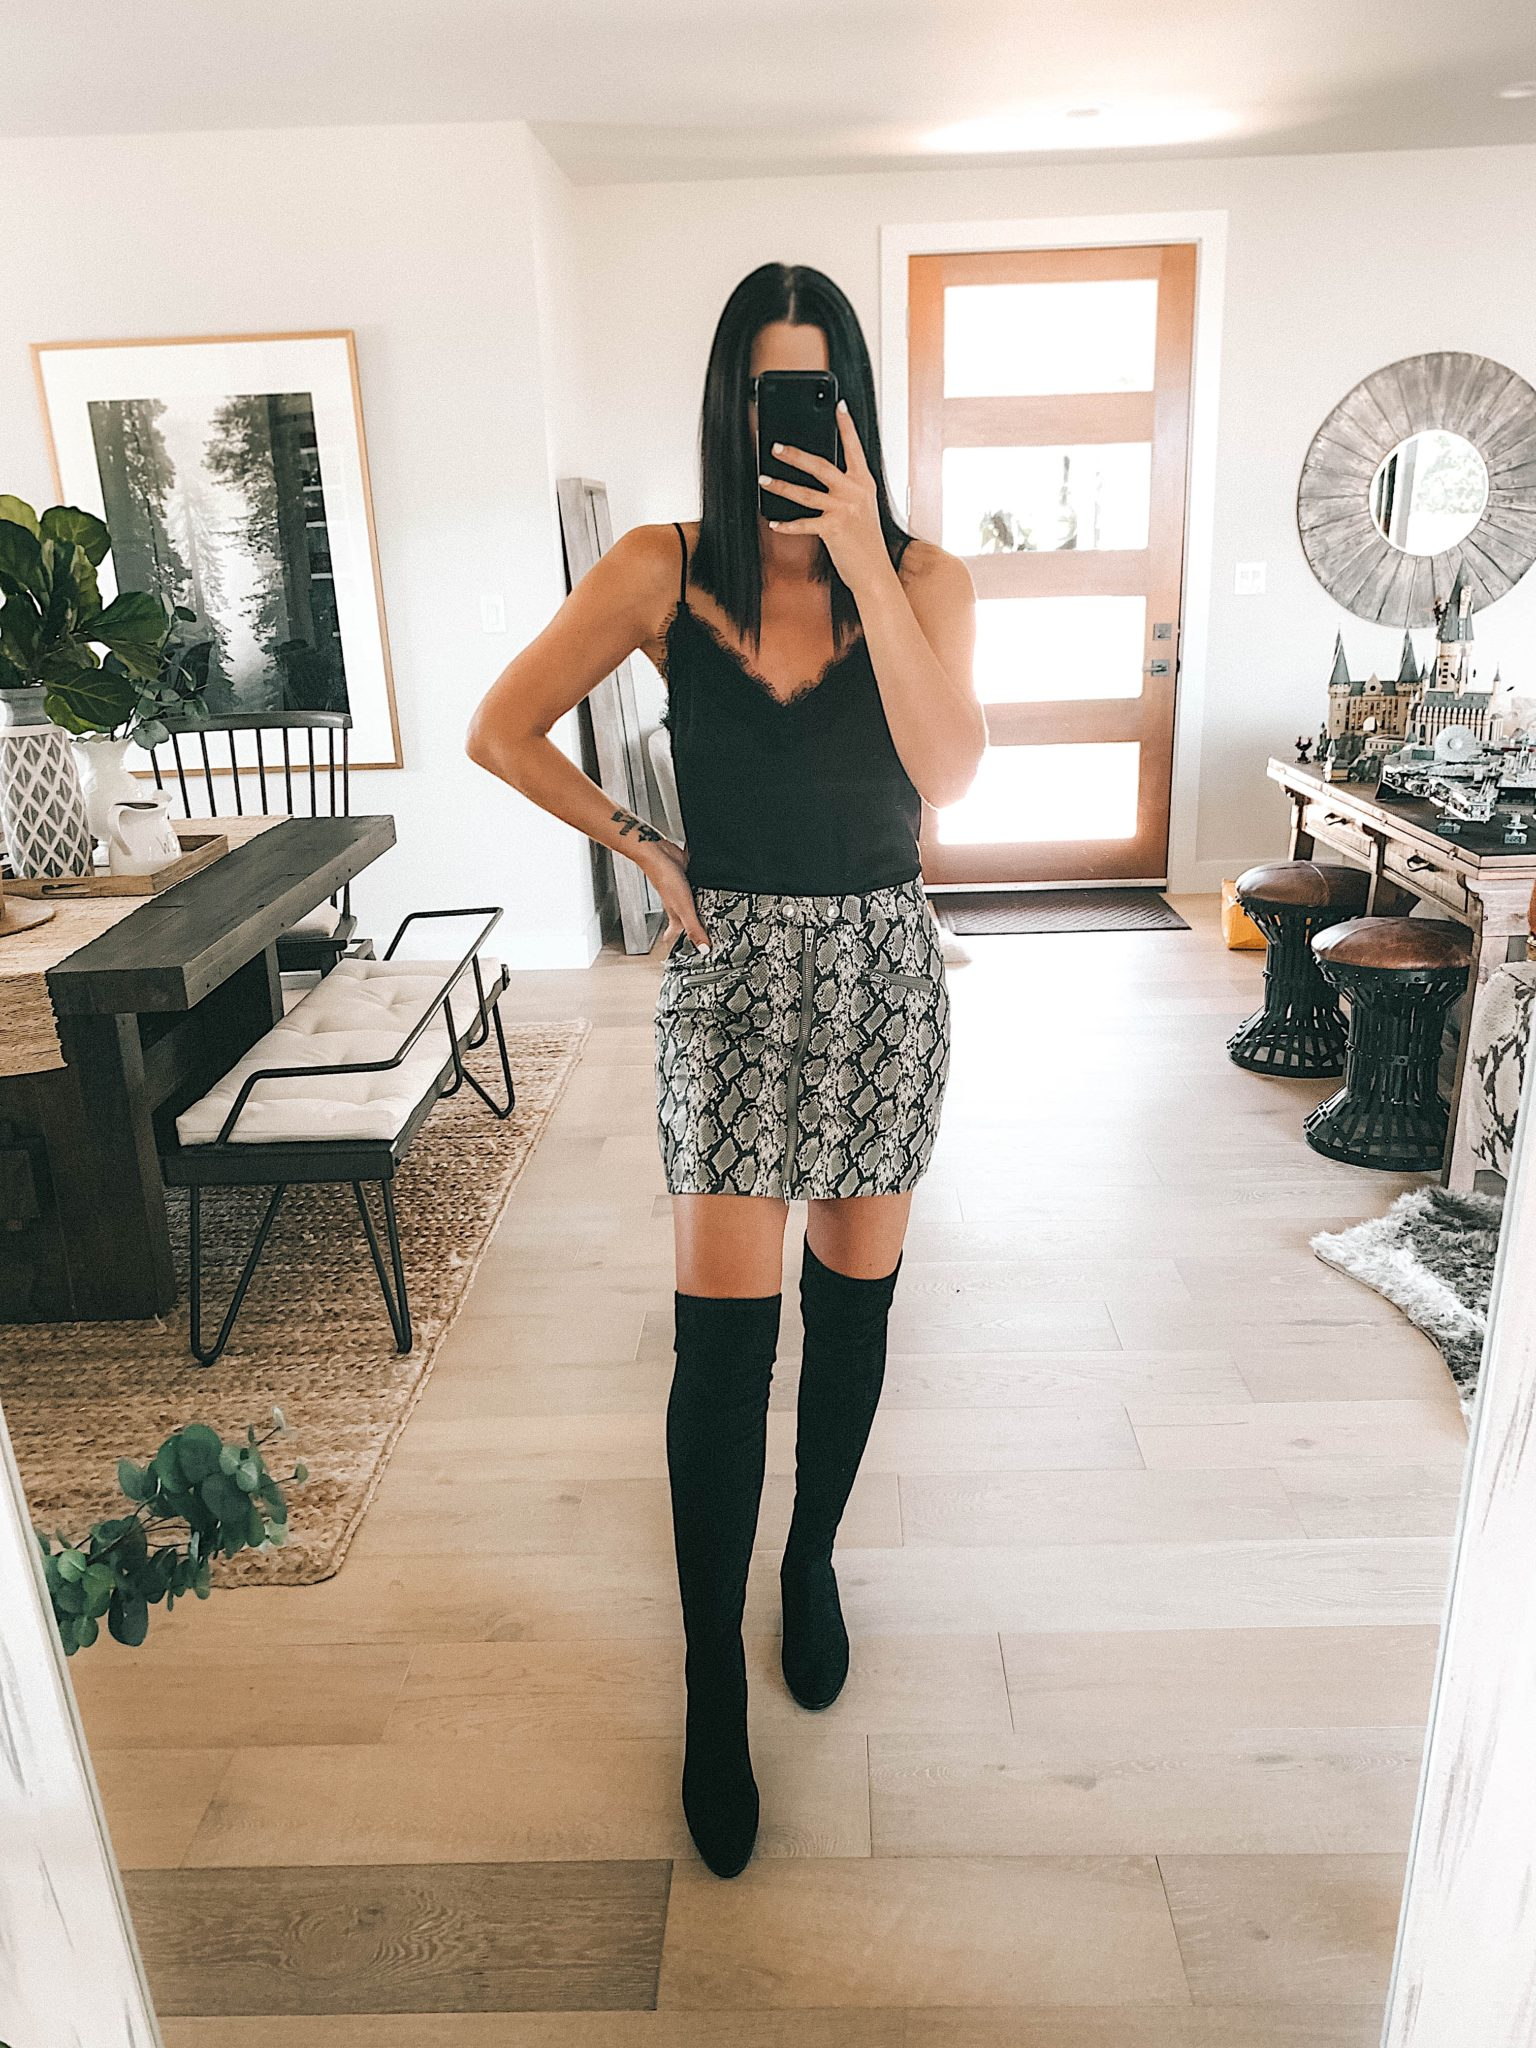 Create a Capsule Wardrobe with Nordstrom Anniversary Sale Pieces by popular Austin fashion blog, Dressed to Kill: image of a woman standing in her house and wearing a Nordstrom BlankNYC Snakeskin Mini Skirt, Steve Madden Over the Knee Boots and BP Lace Cami.